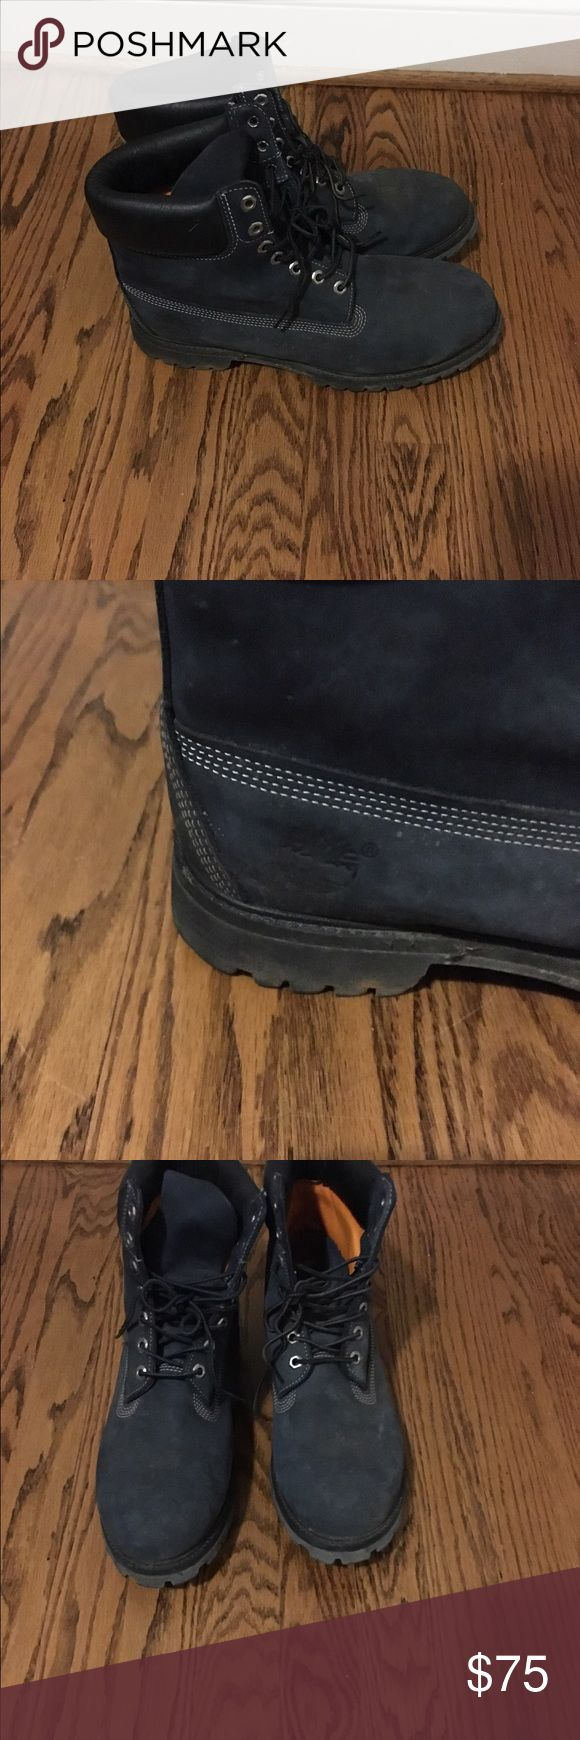 Men's timberland Boots Size 11 Barely worn Greyish/Blue Timberland Boots for Men Size 11 Timberland Shoes Boots